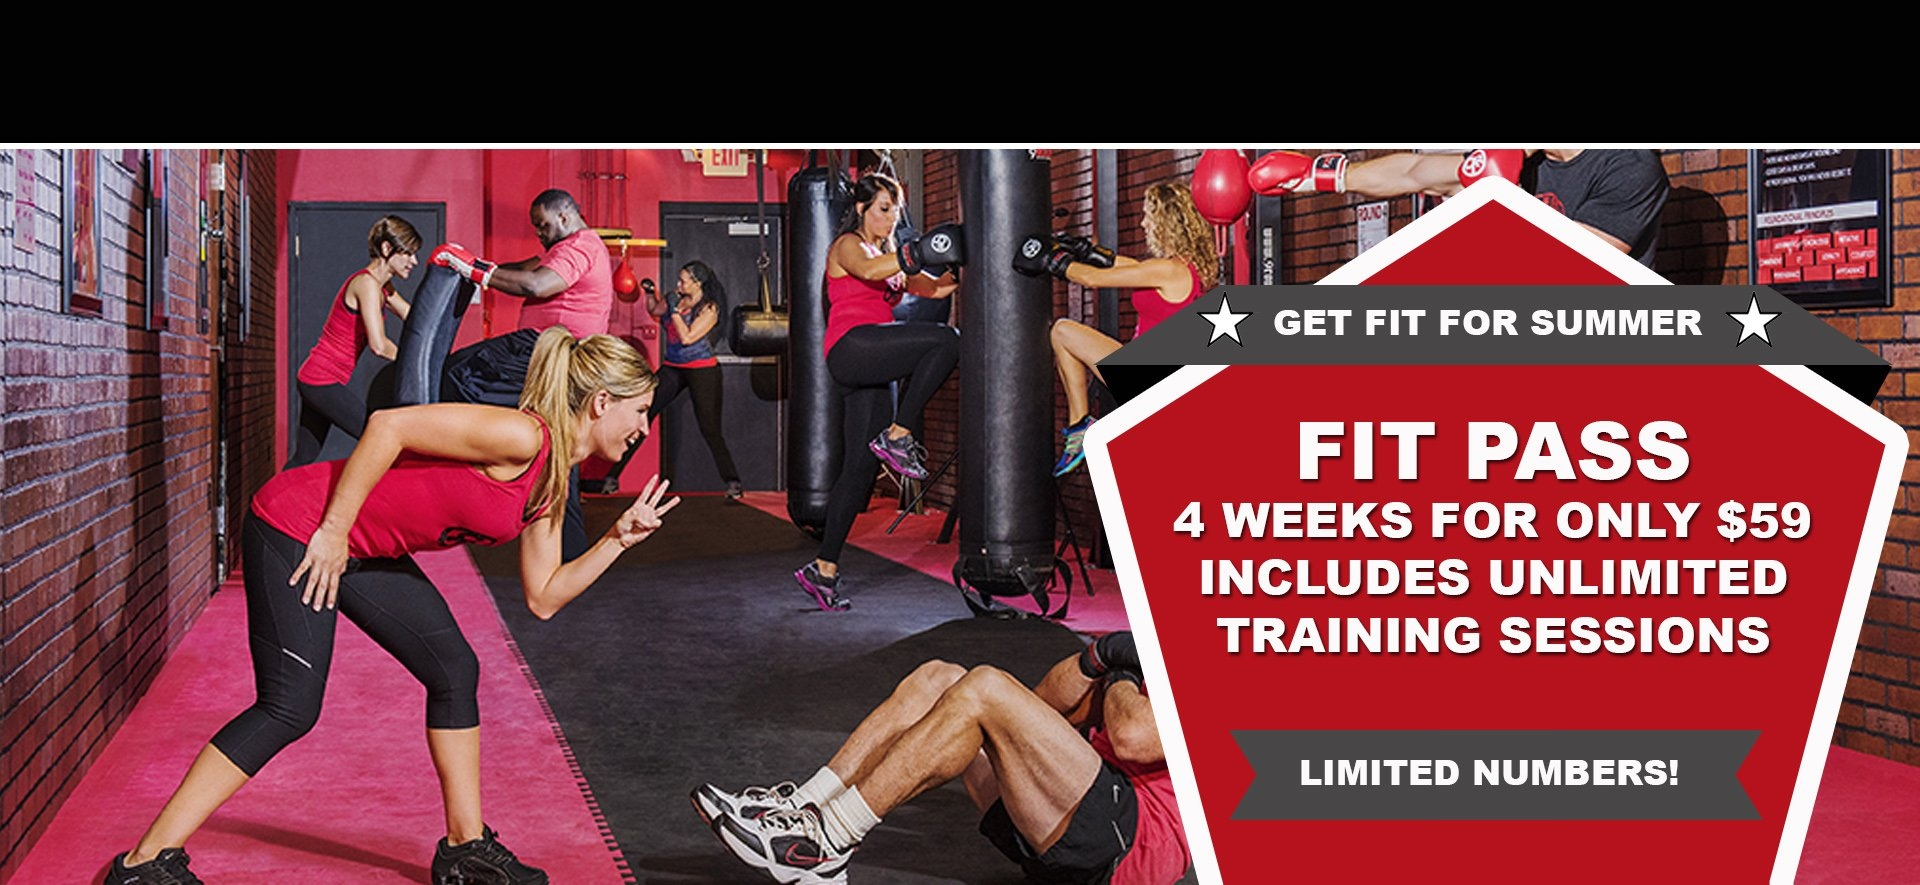 4 Weeks Unlimited Training For $59